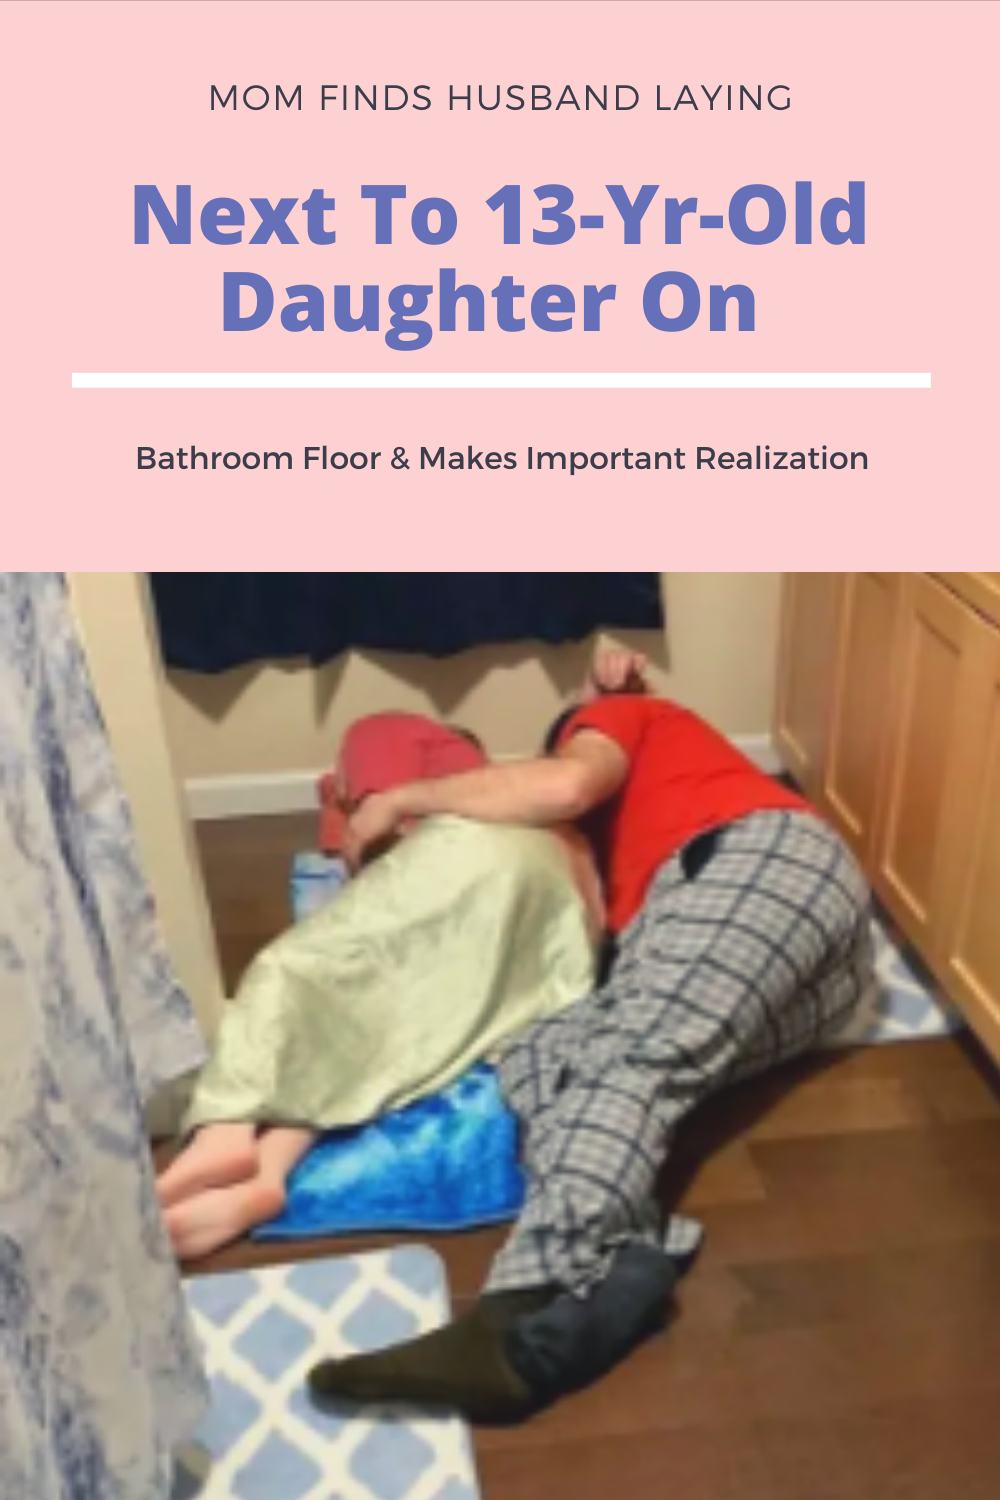 Mom Finds Husband Laying Next To 13 Yr Old Daughter On Bathroom Floor Makes Important Realization In 2020 Fun Facts Find A Husband Heart Touching Story